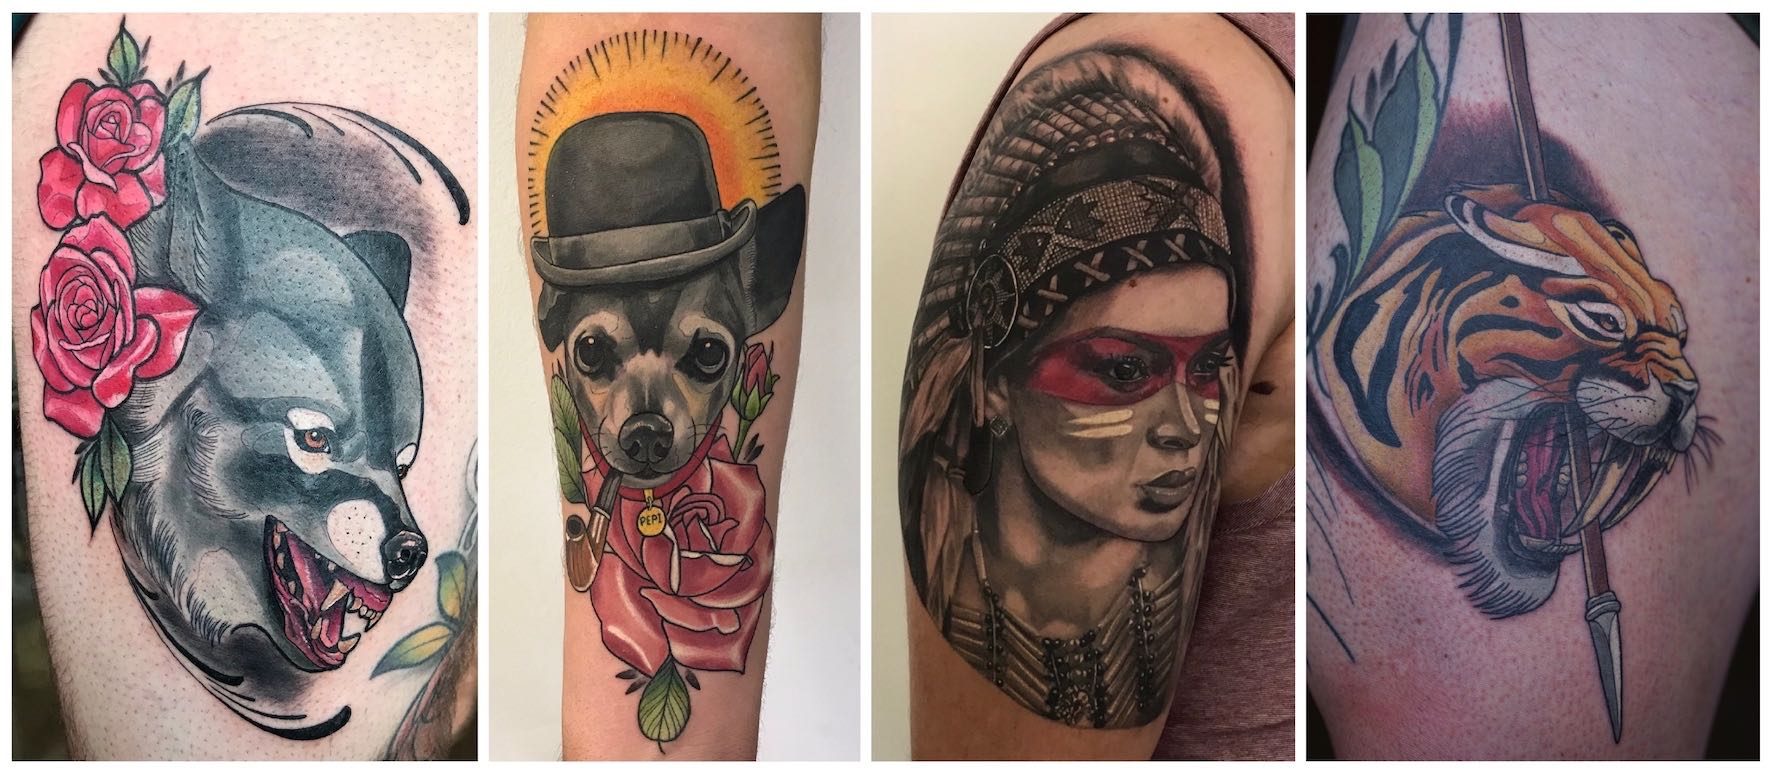 A selection of tattoos done by Ronald Jacobs